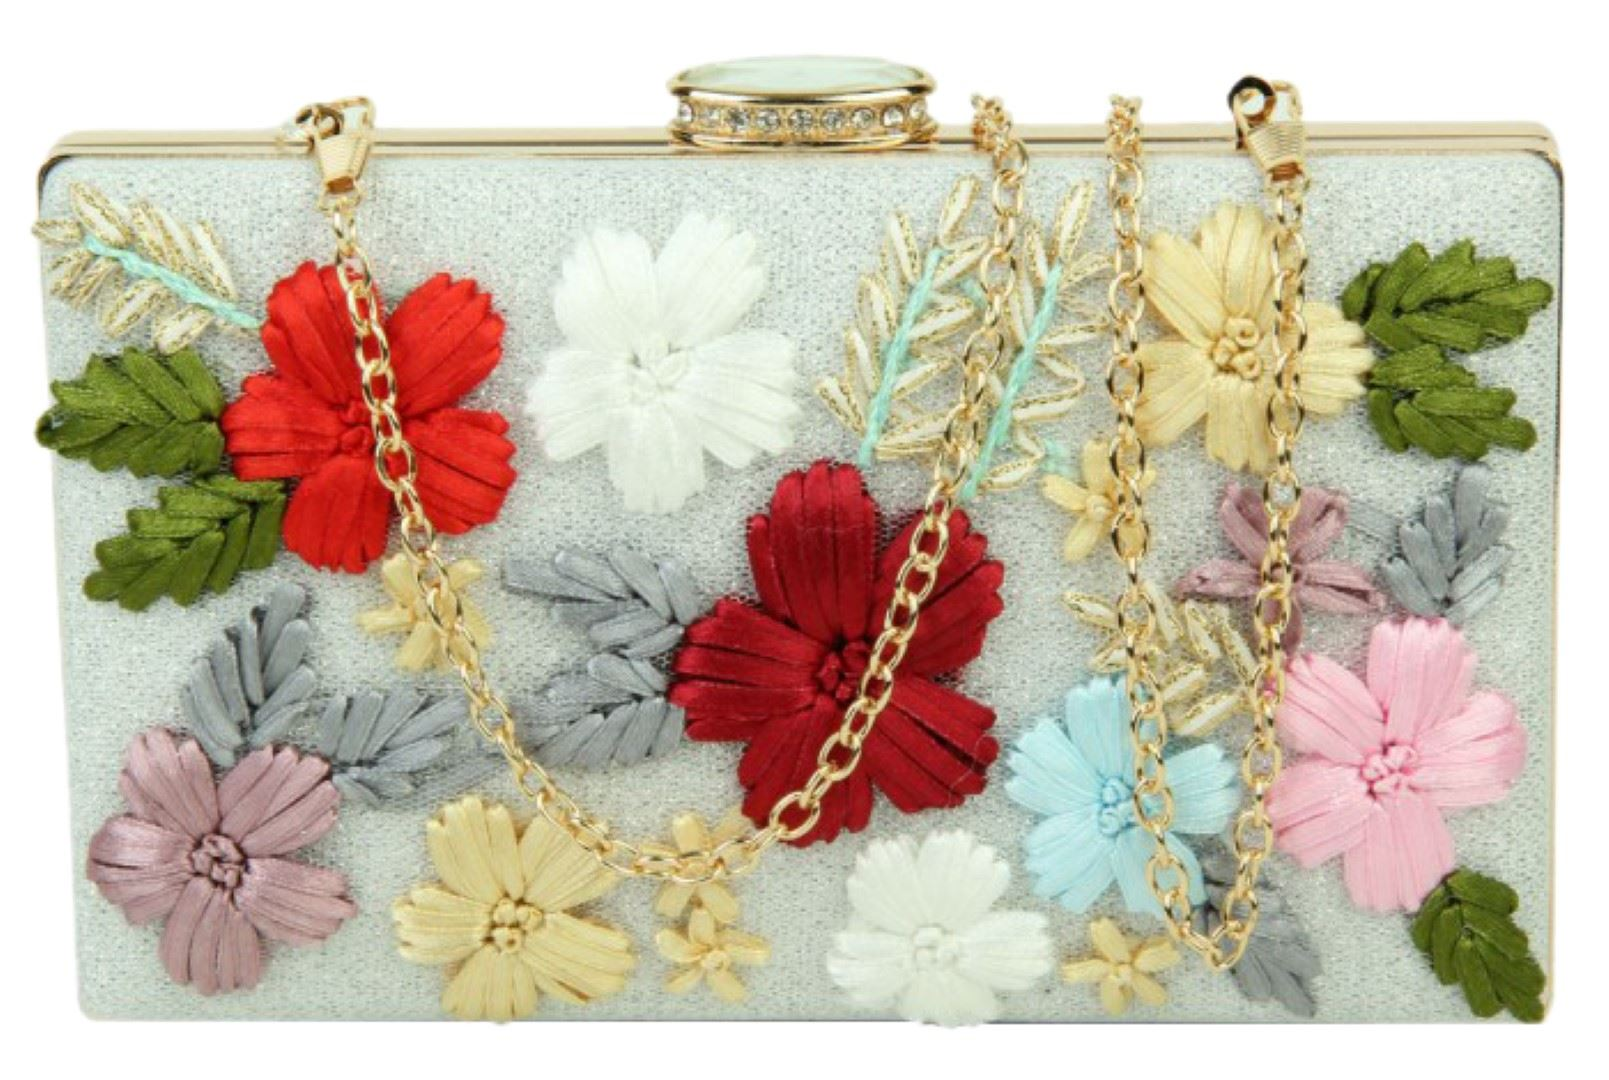 Vintage-Hard-Case-Clutch-Bag-Embroidered-Flowers-Diamante-Evening-Party-Bridal